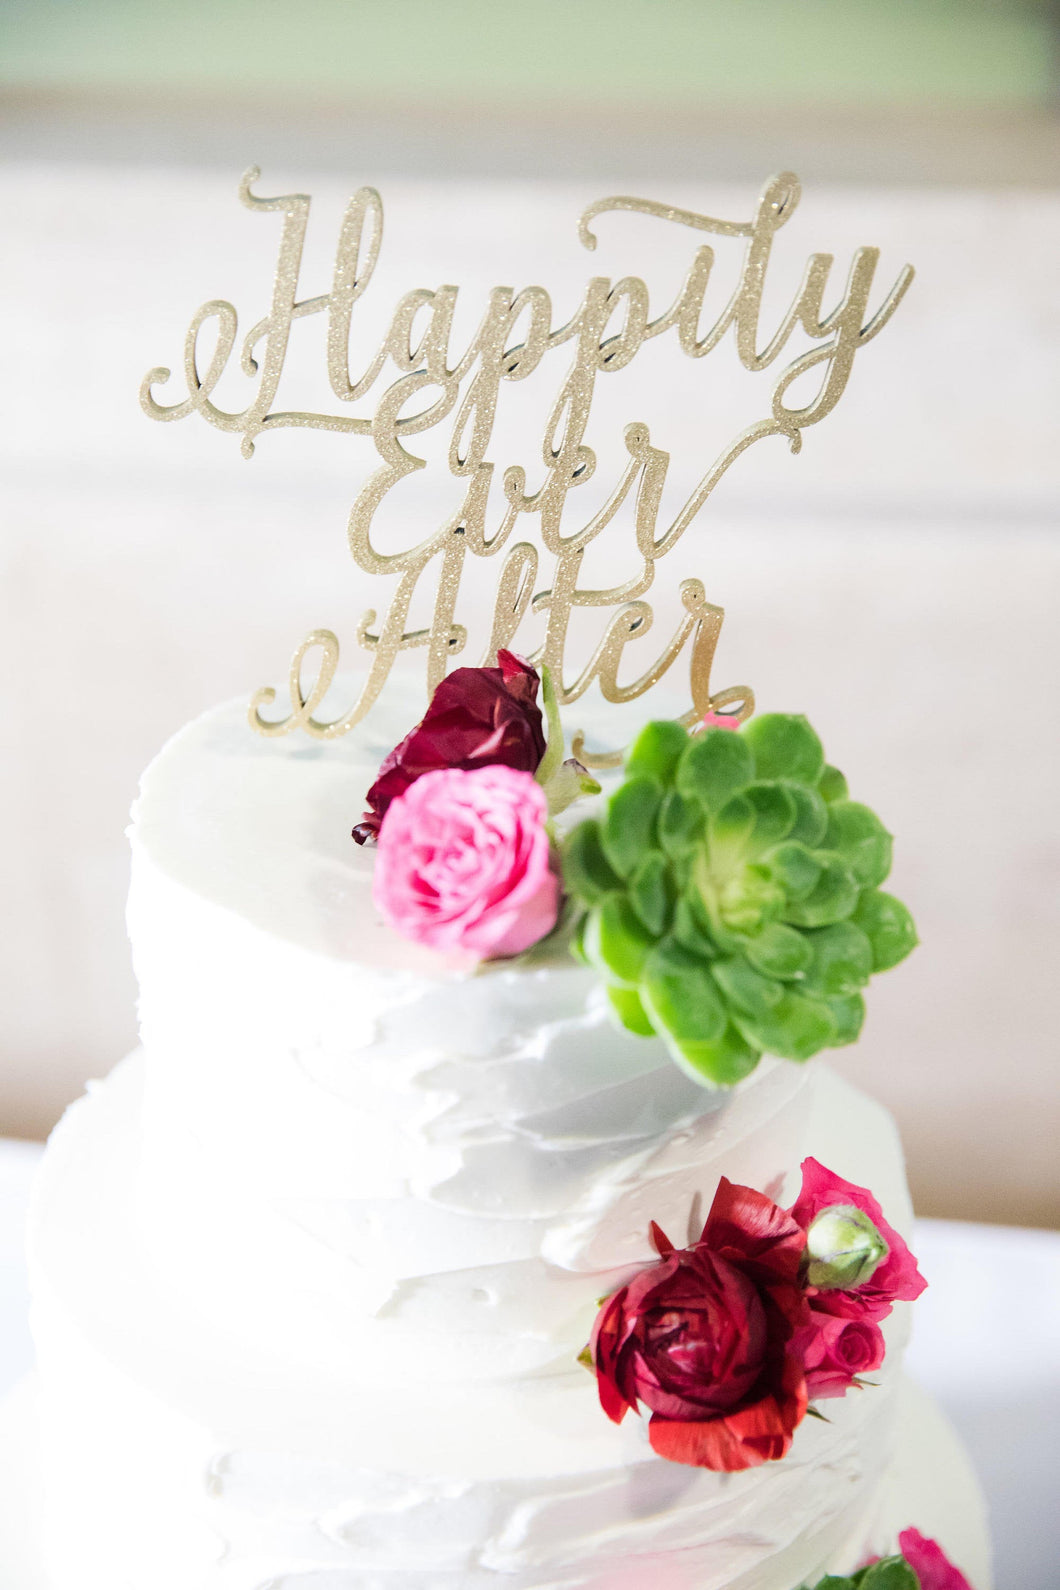 Happily Ever After Cake Topper, 6.5